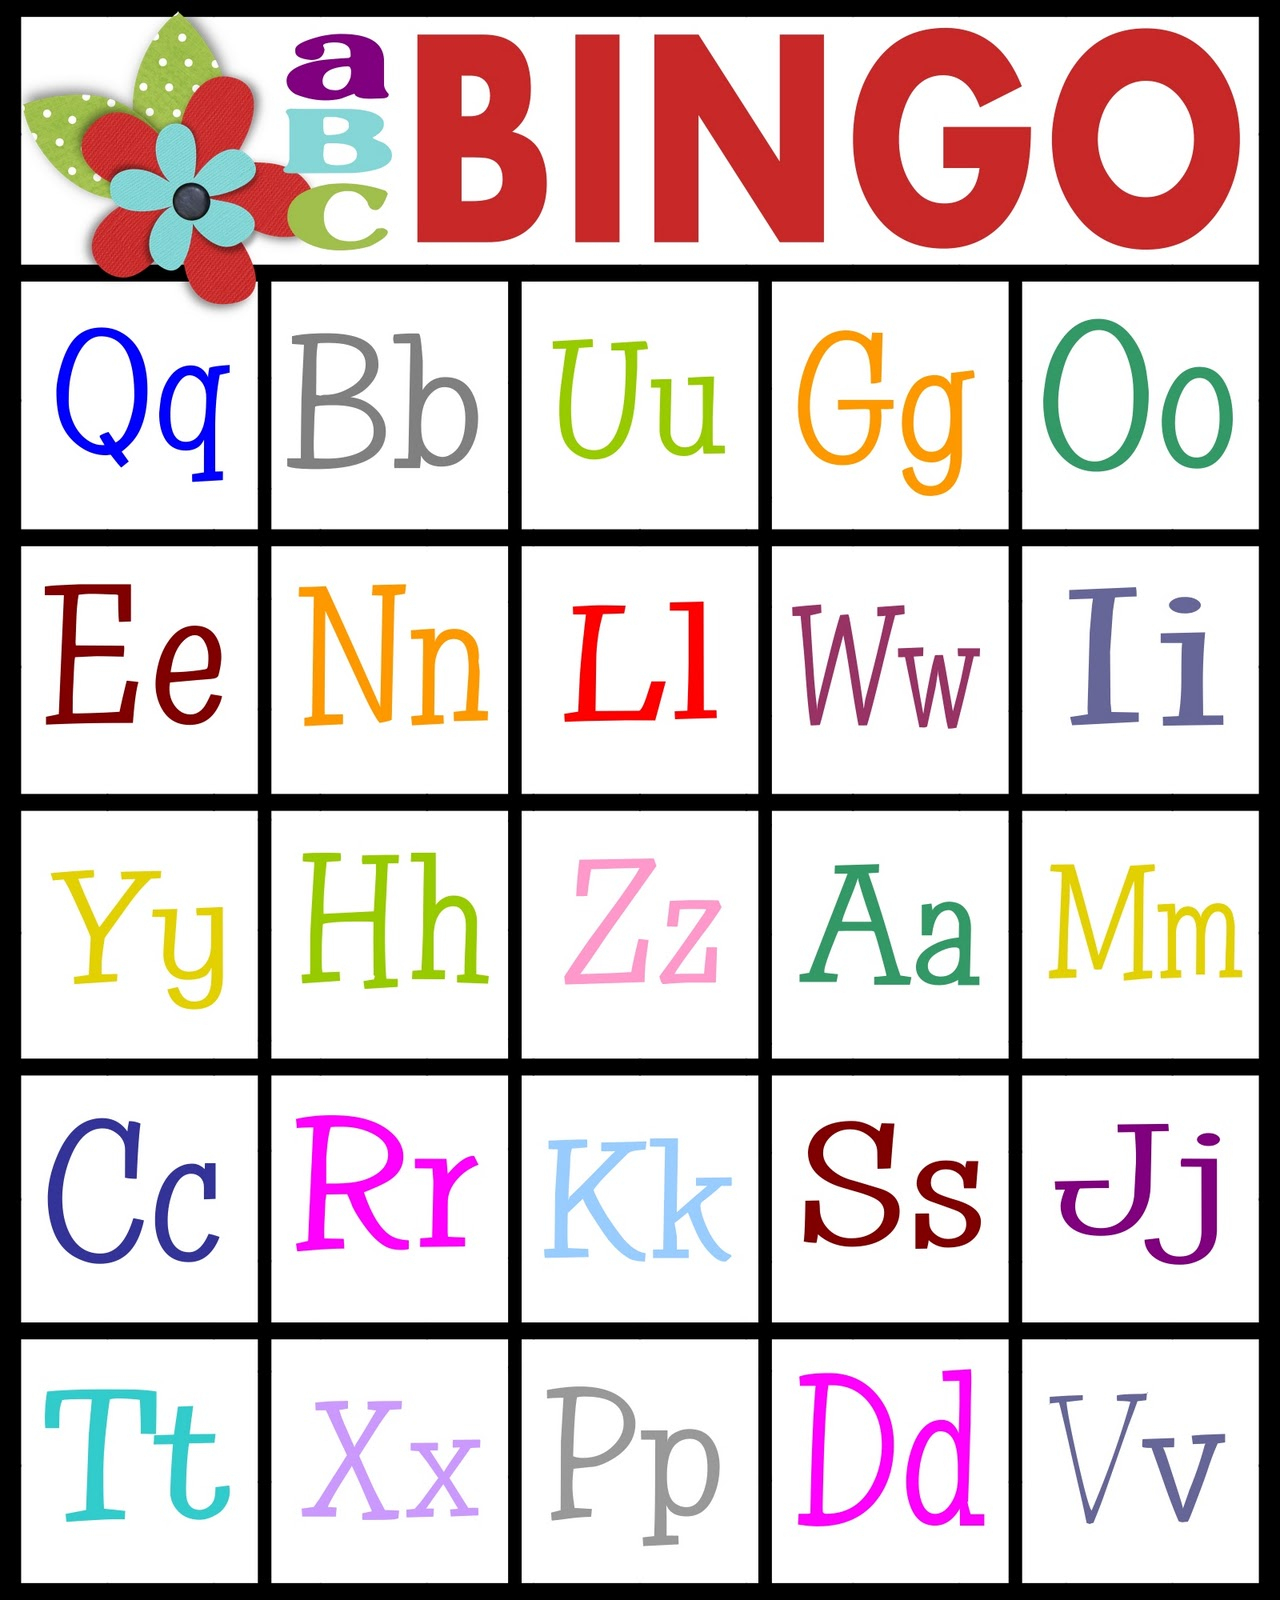 Abc's Bingo- Free Printable! - Sassy Sanctuary